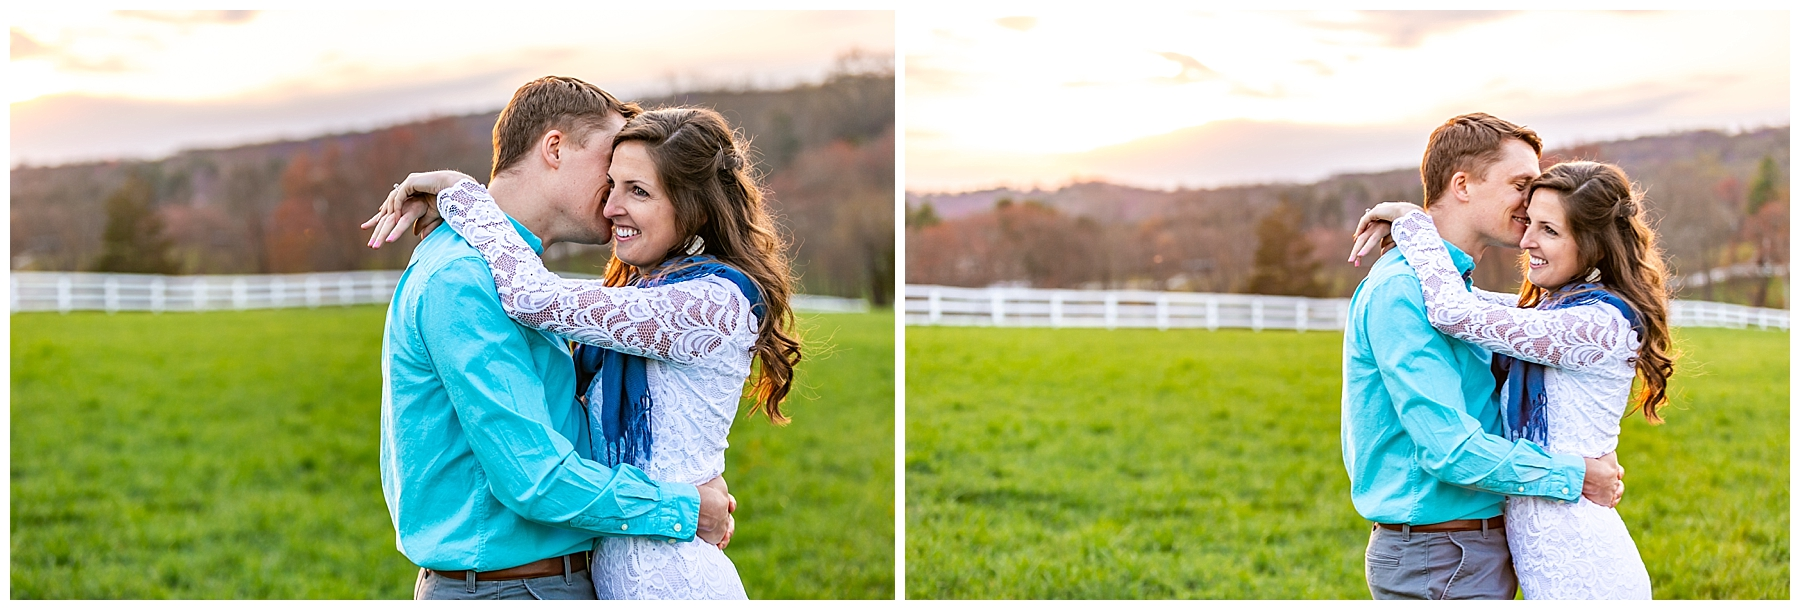 Chelsea Phil Private Estate Engagement Living Radiant Photography photos color_0043.jpg